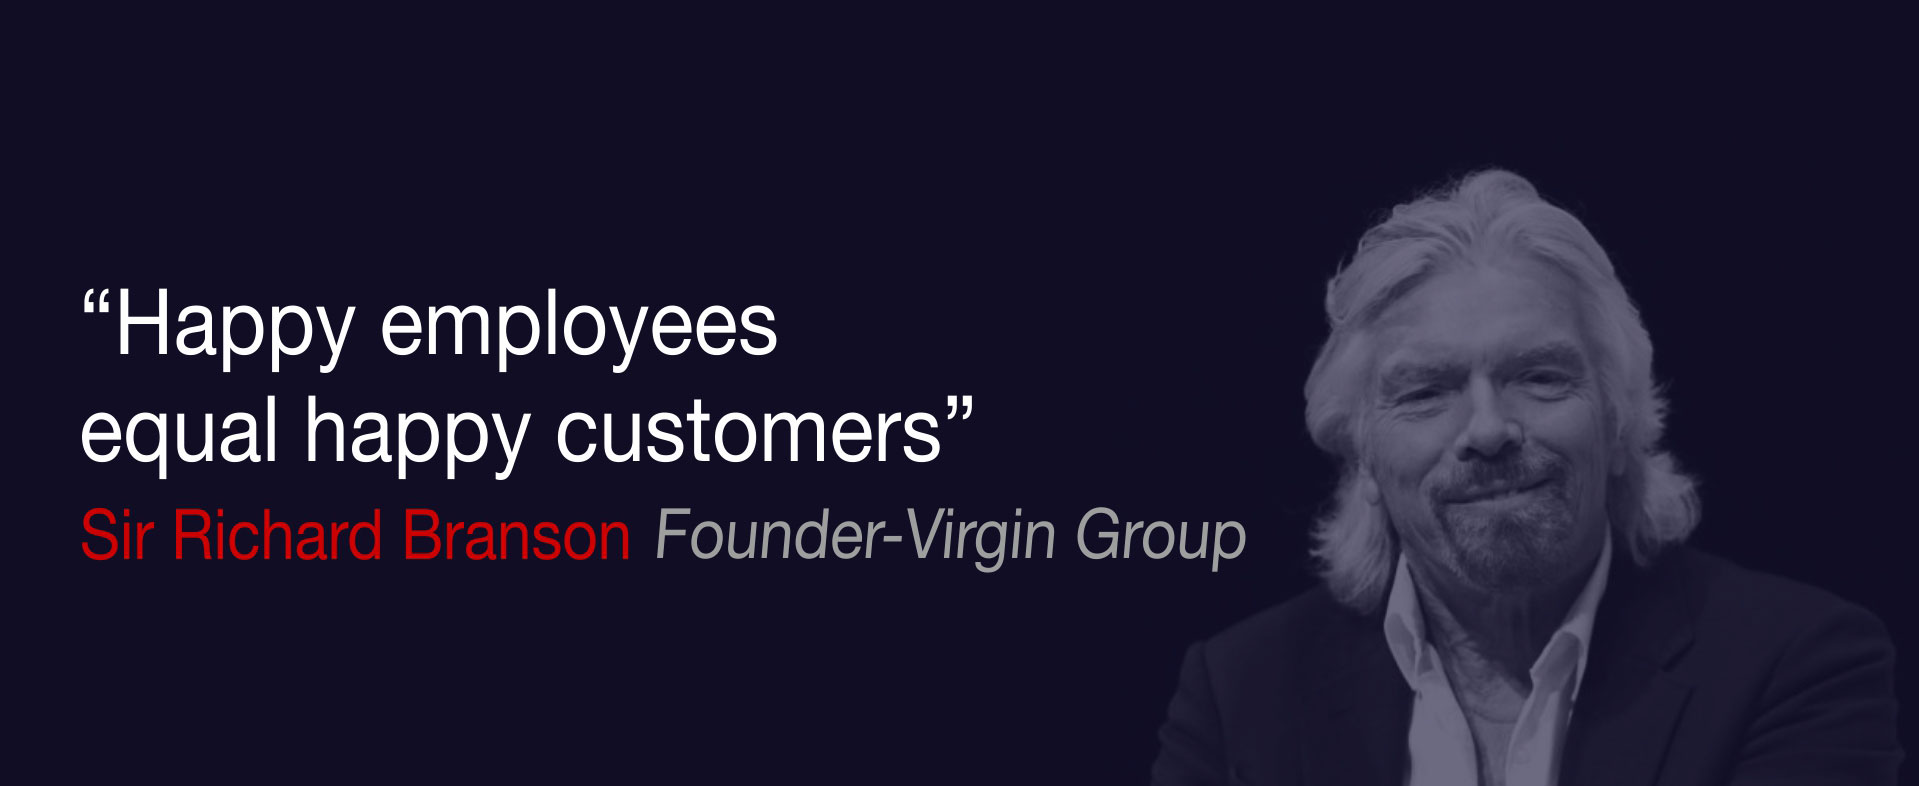 Happy employees equal happy customers, Sir Richard Branson